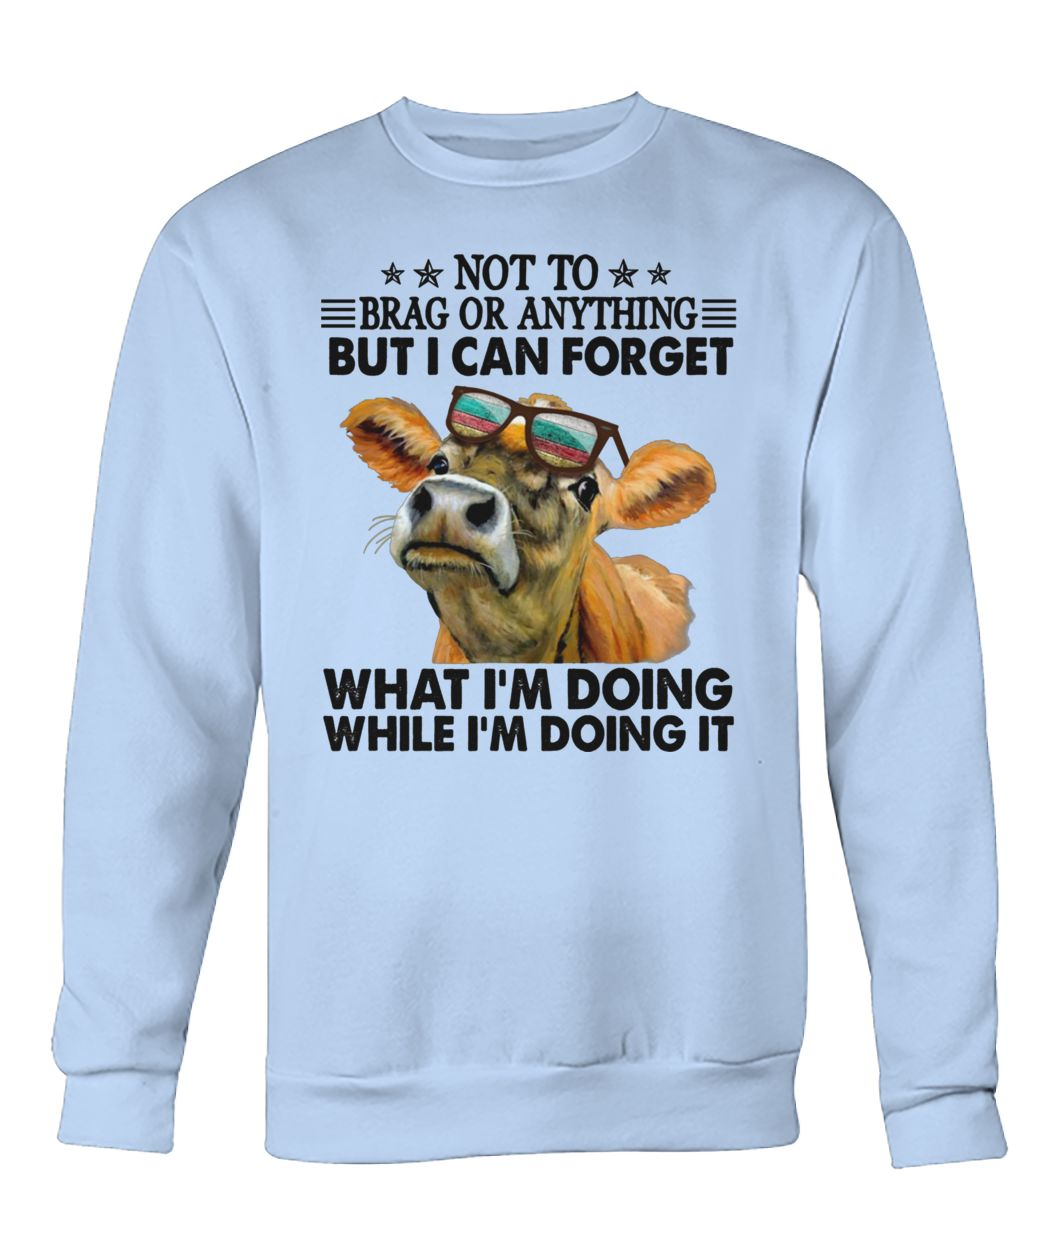 Not to brag or anything but I can forget what I'm doing while I'm doing it crew neck sweatshirt